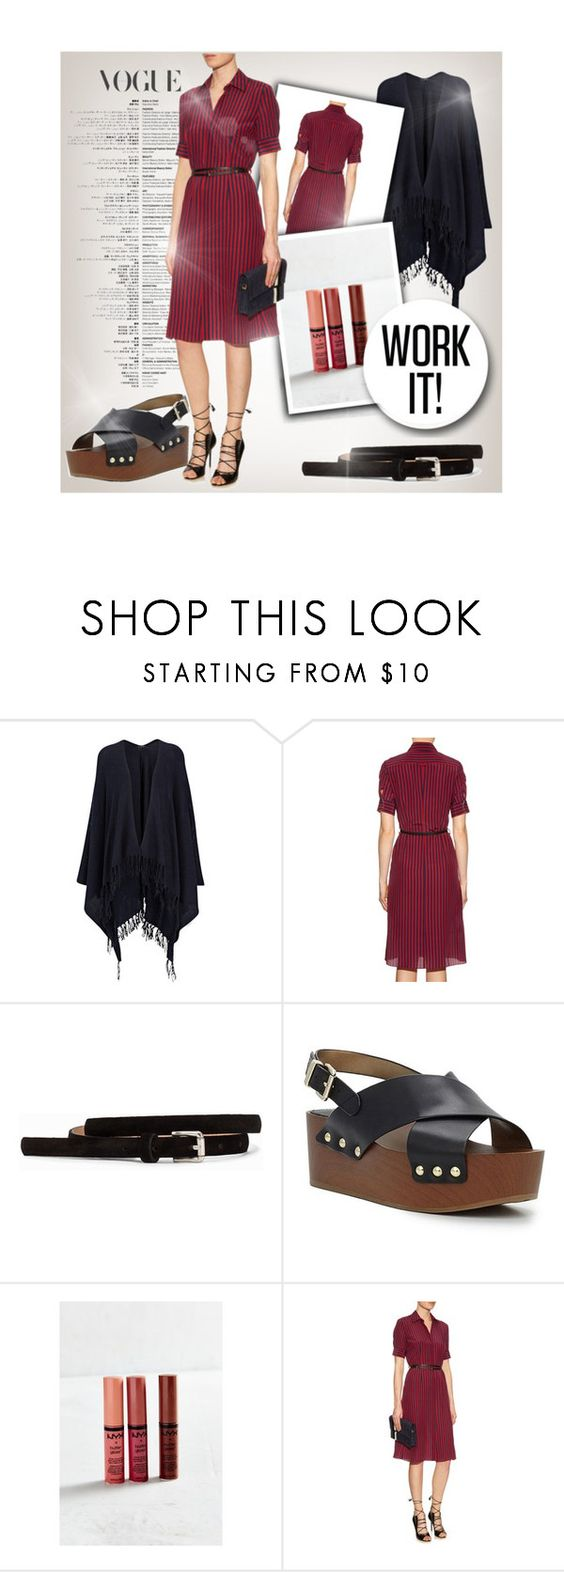 """Belted shirt-dress"" by smooliajw ❤ liked on Polyvore featuring Joseph, Altuzarra, Pieces, Sam Edelman and NYX"